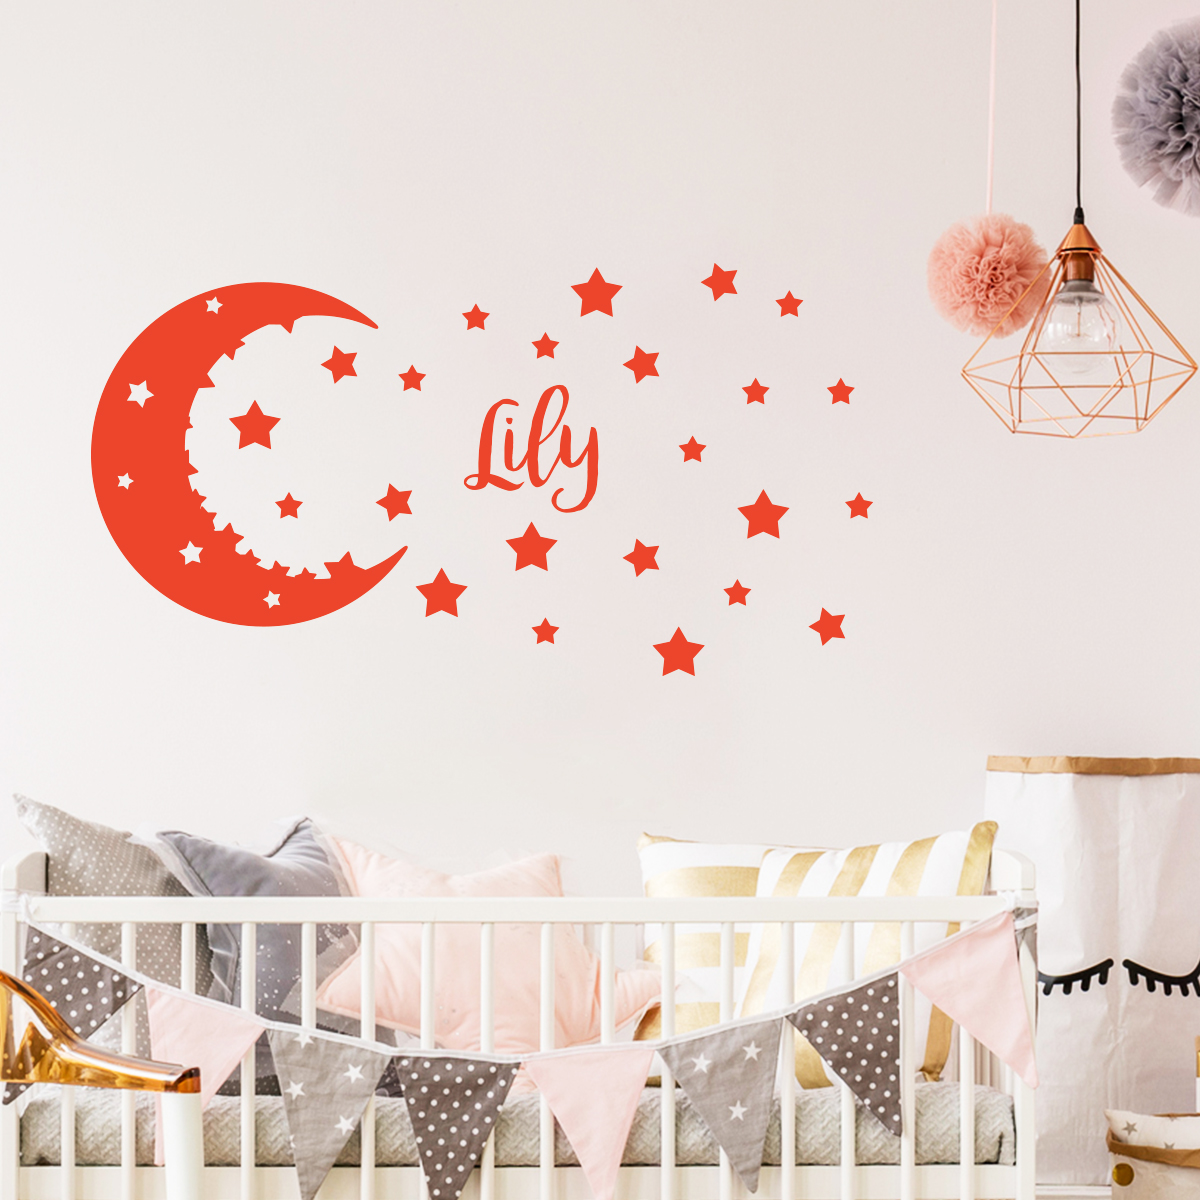 sticker pr nom personnalis ciel toil mini stickers. Black Bedroom Furniture Sets. Home Design Ideas